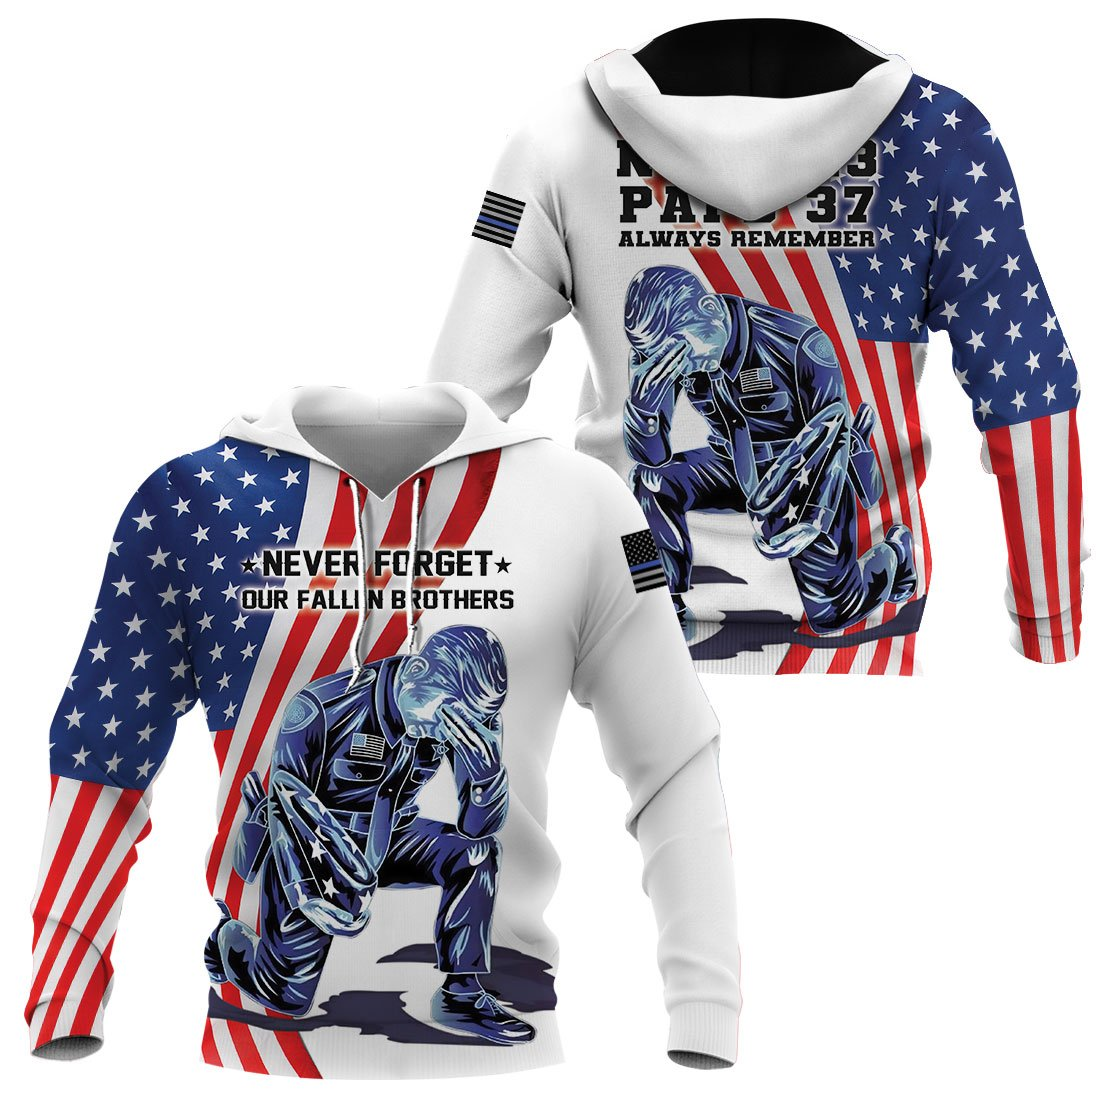 3D Police Apparel - Never Forget Our Fallen Brothers - 4zOutfitters Merchandise